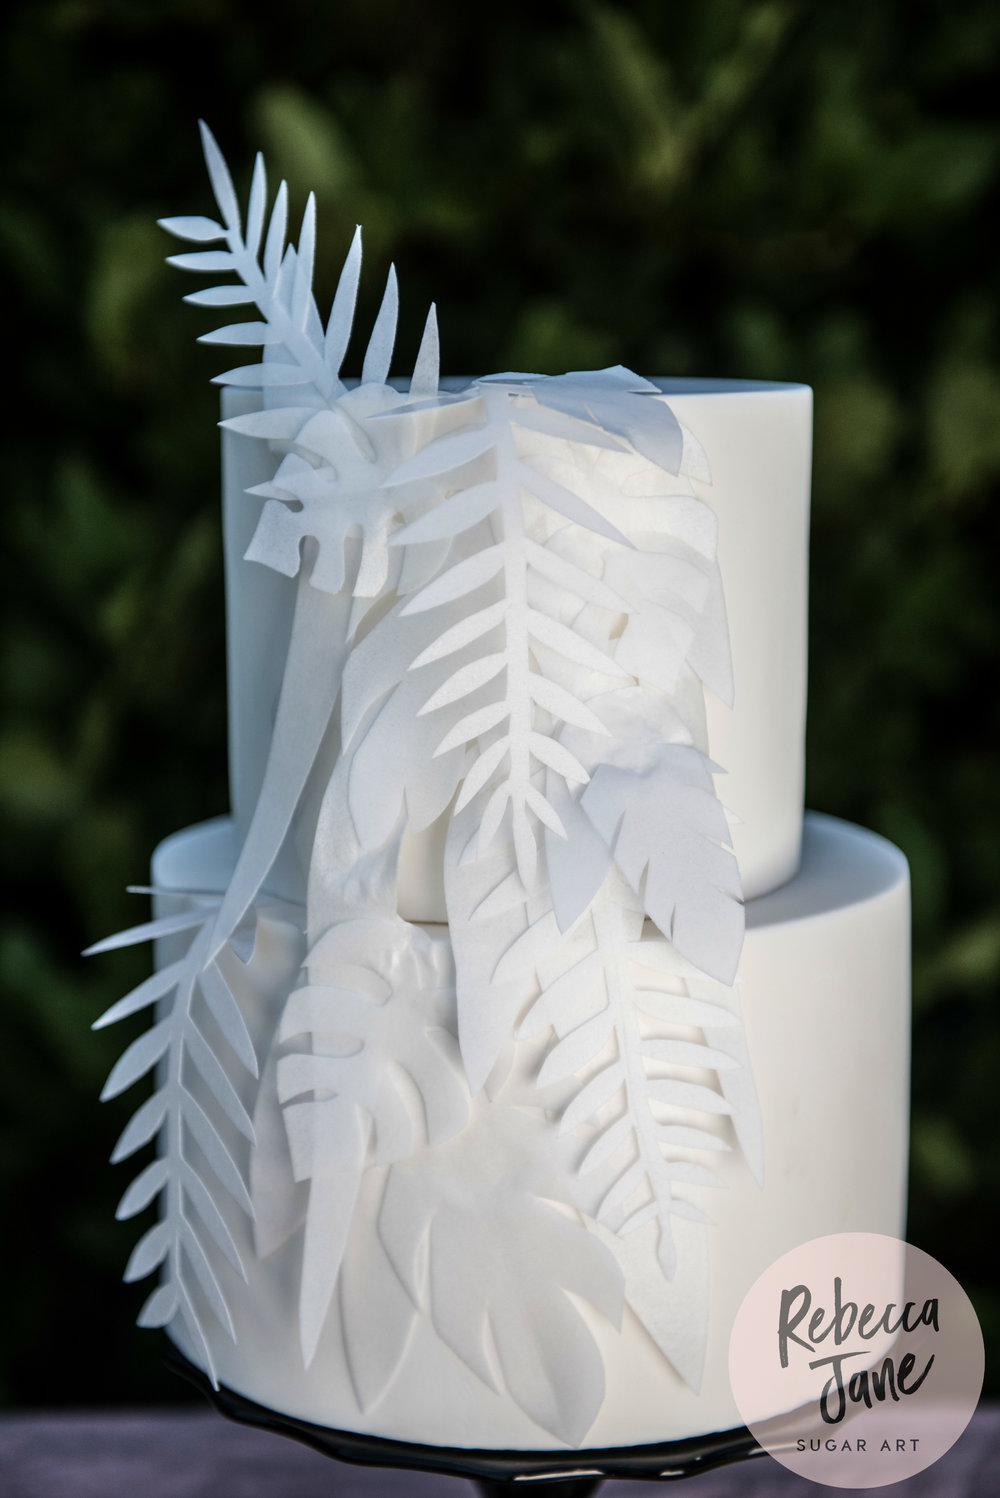 Rebecca Jane Sugar Art white wafer paper foliage wedding cake.jpg